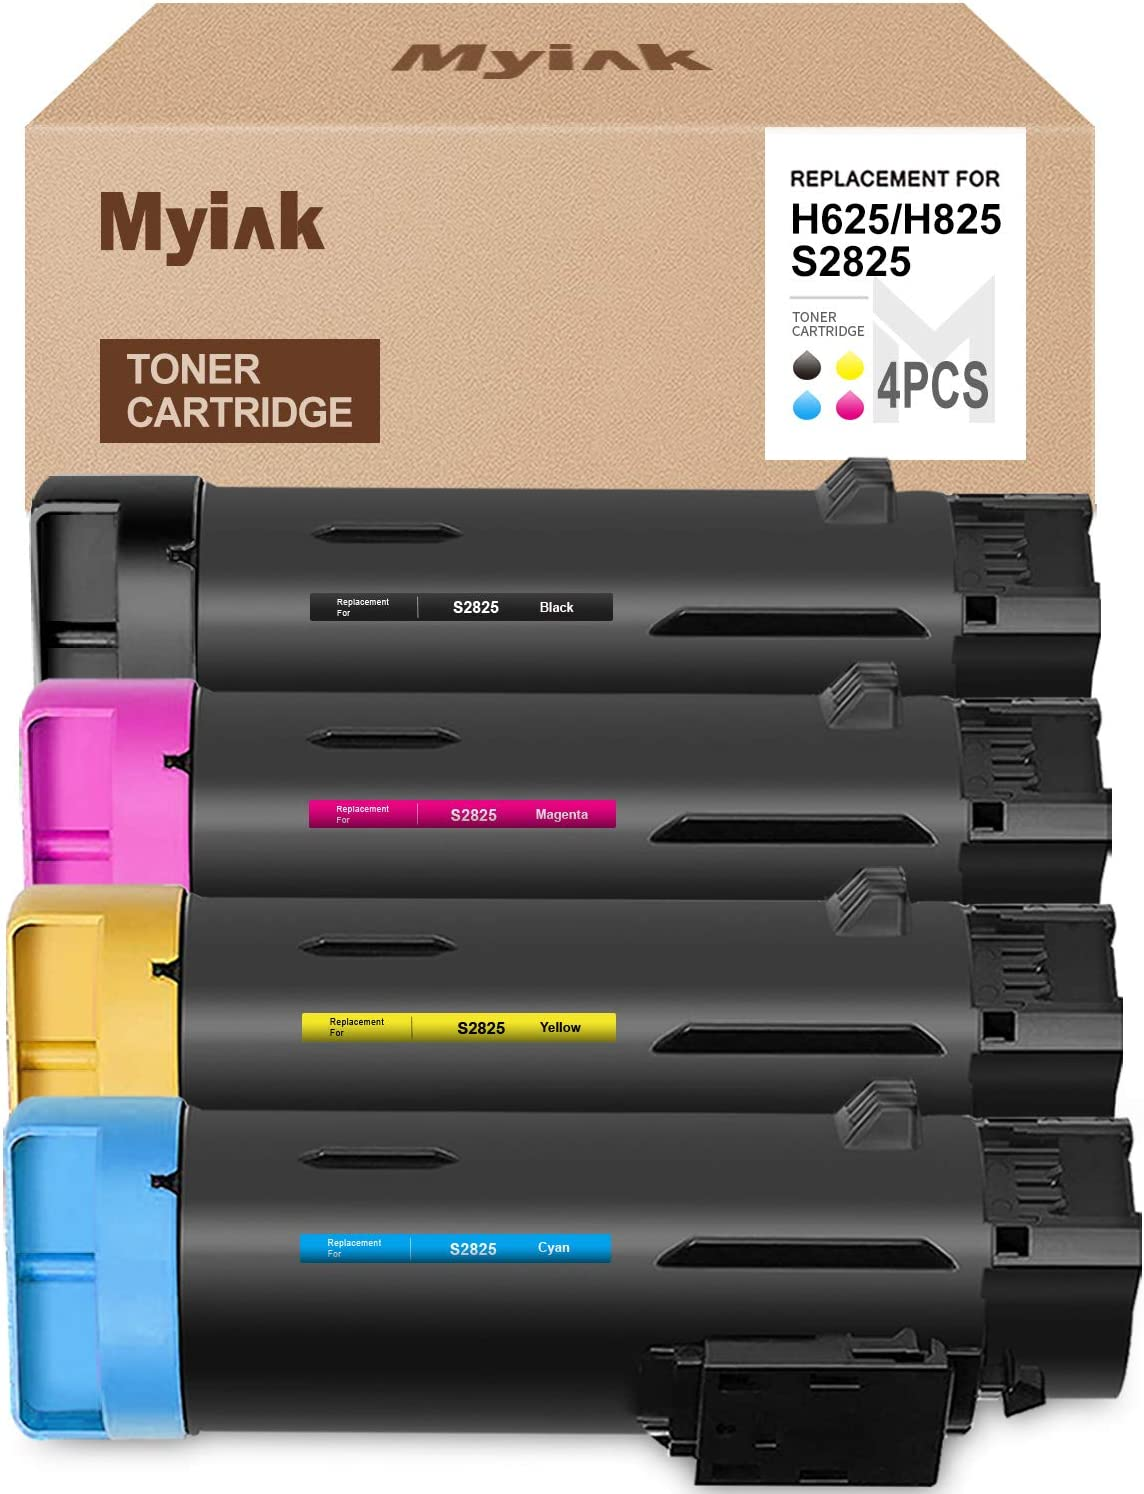 MYIK Compatible Toner Cartridge Replacements for Dell H625 H825 2825 High Yield (1 Black, 1 Cyan, 1 Magenta, 1 Yellow, 4-Pack)